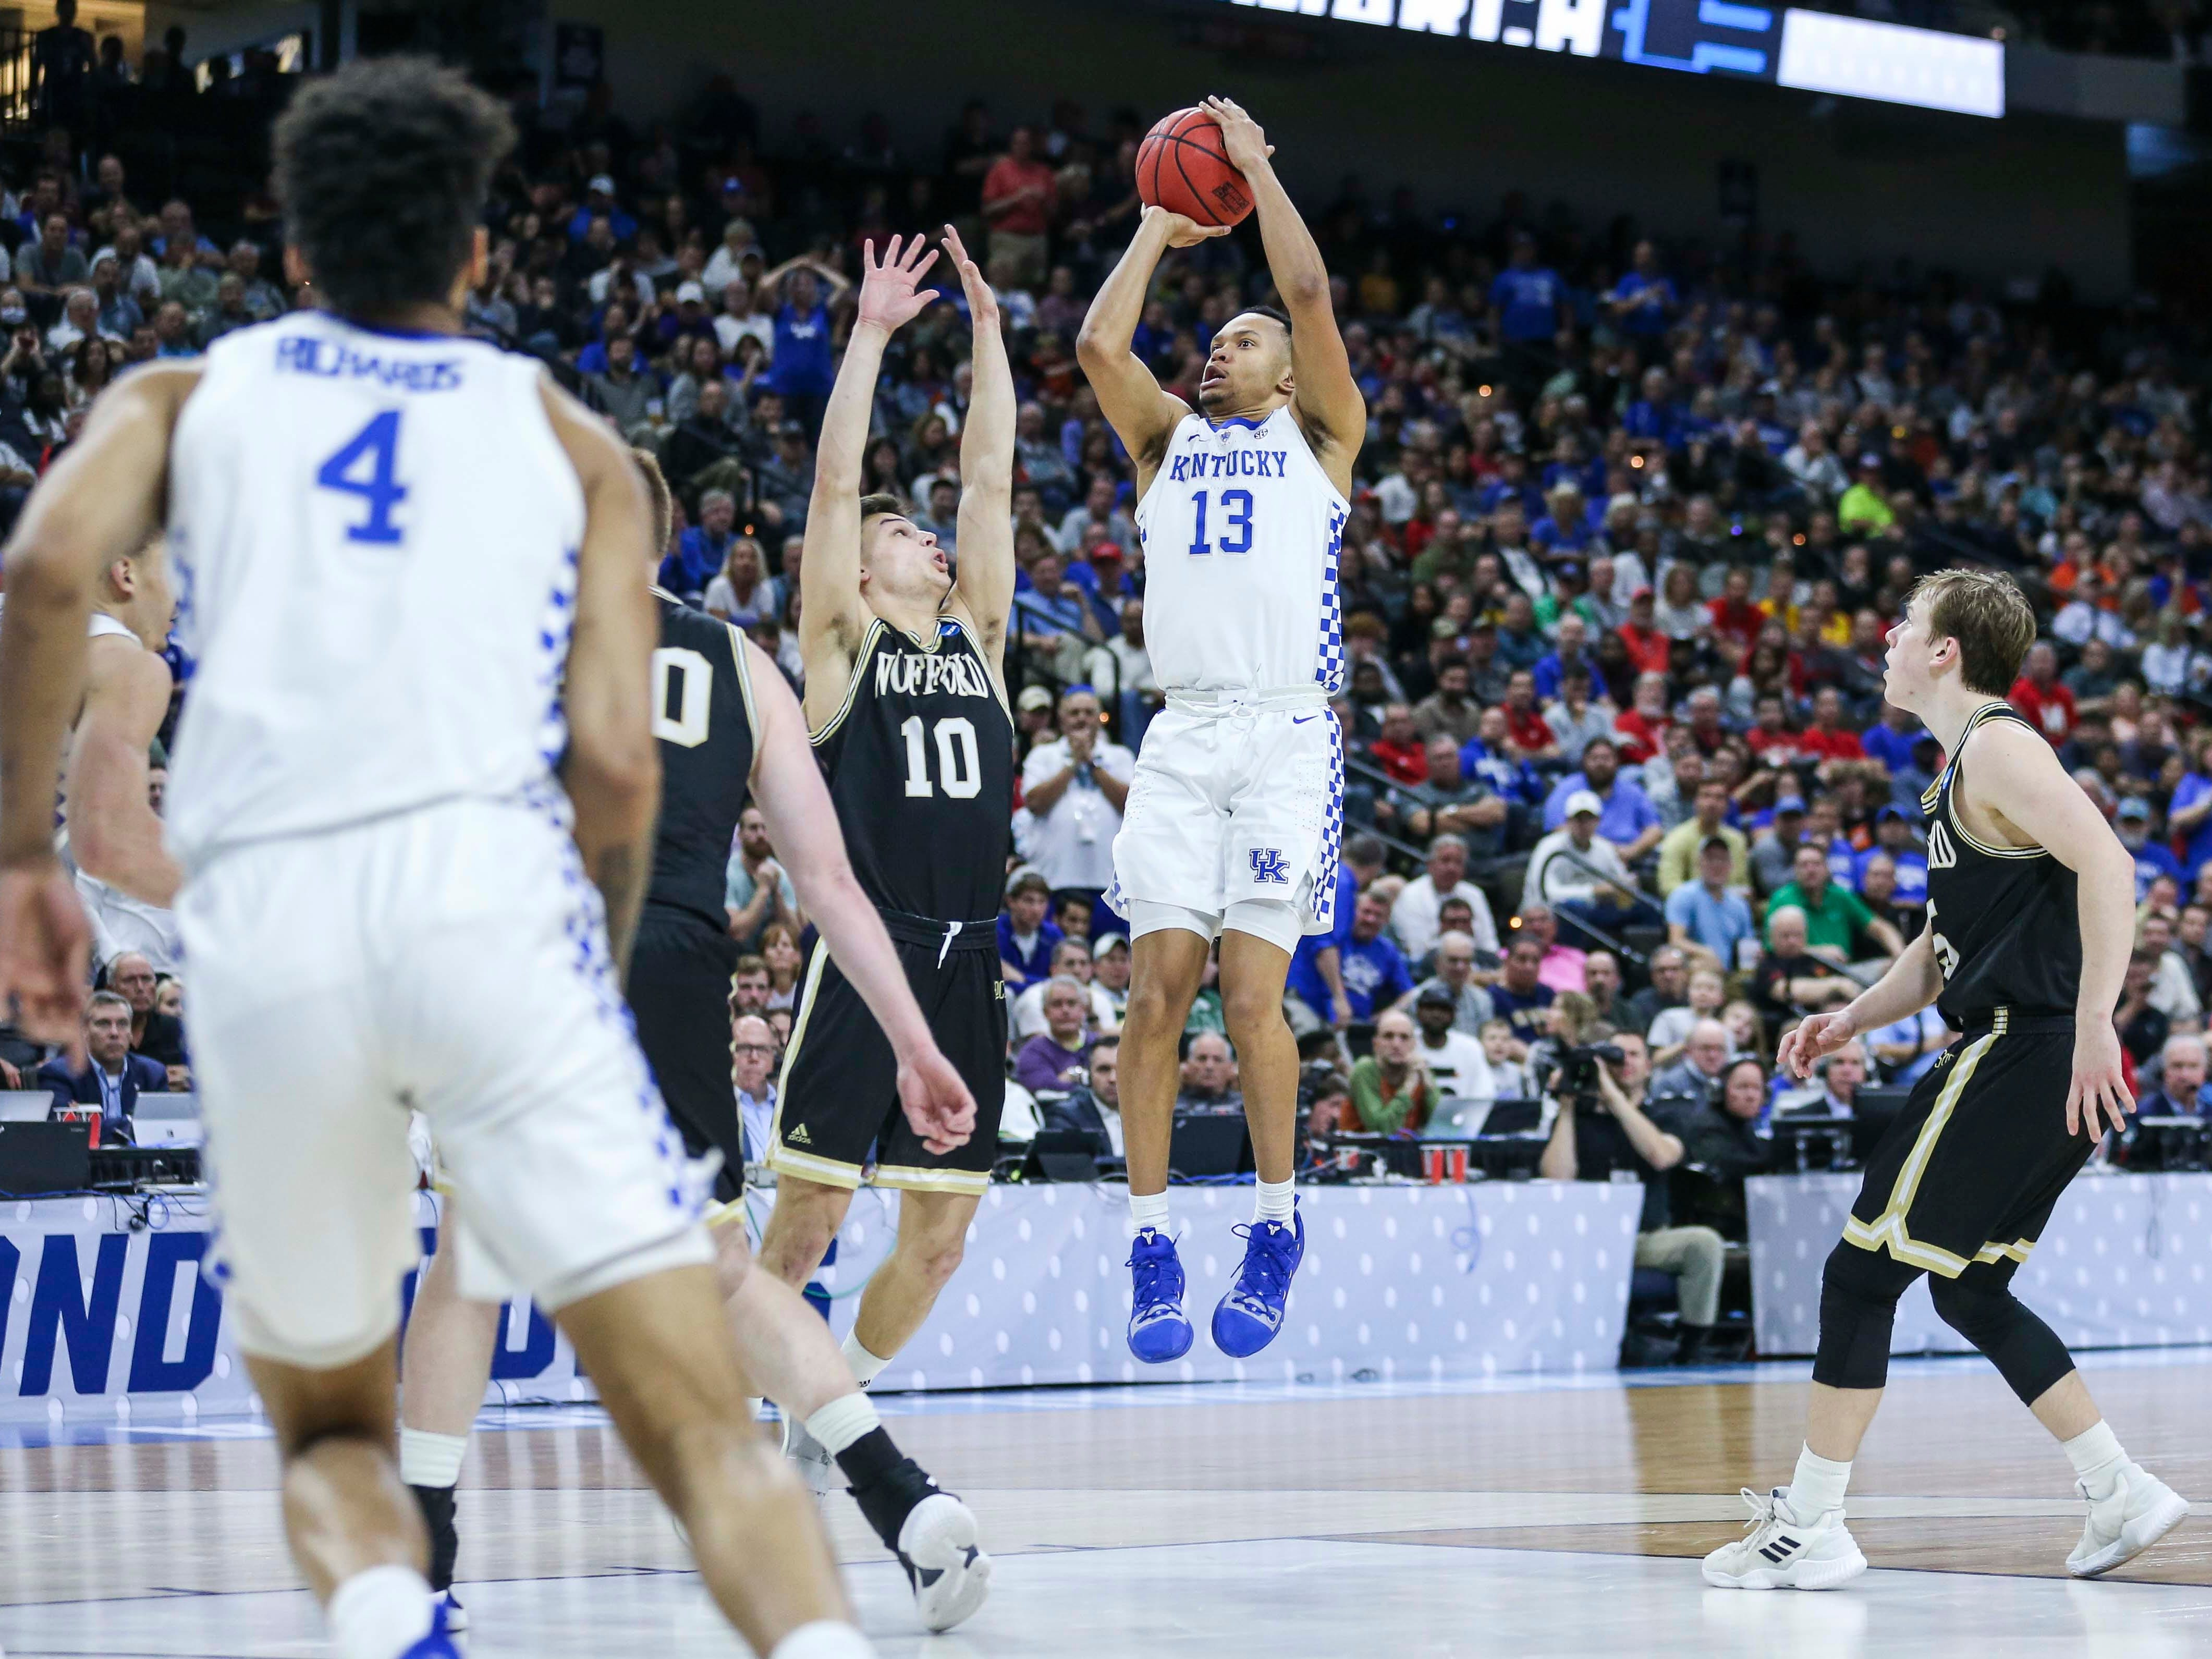 Kentucky's Jamarl Baker had eight points with two rebounds as the Wildcats beat a tenacious Wofford 62-56 in the second round game of the 2019 NCAA tournament in Jacksonville, Fla. March 23, 2019